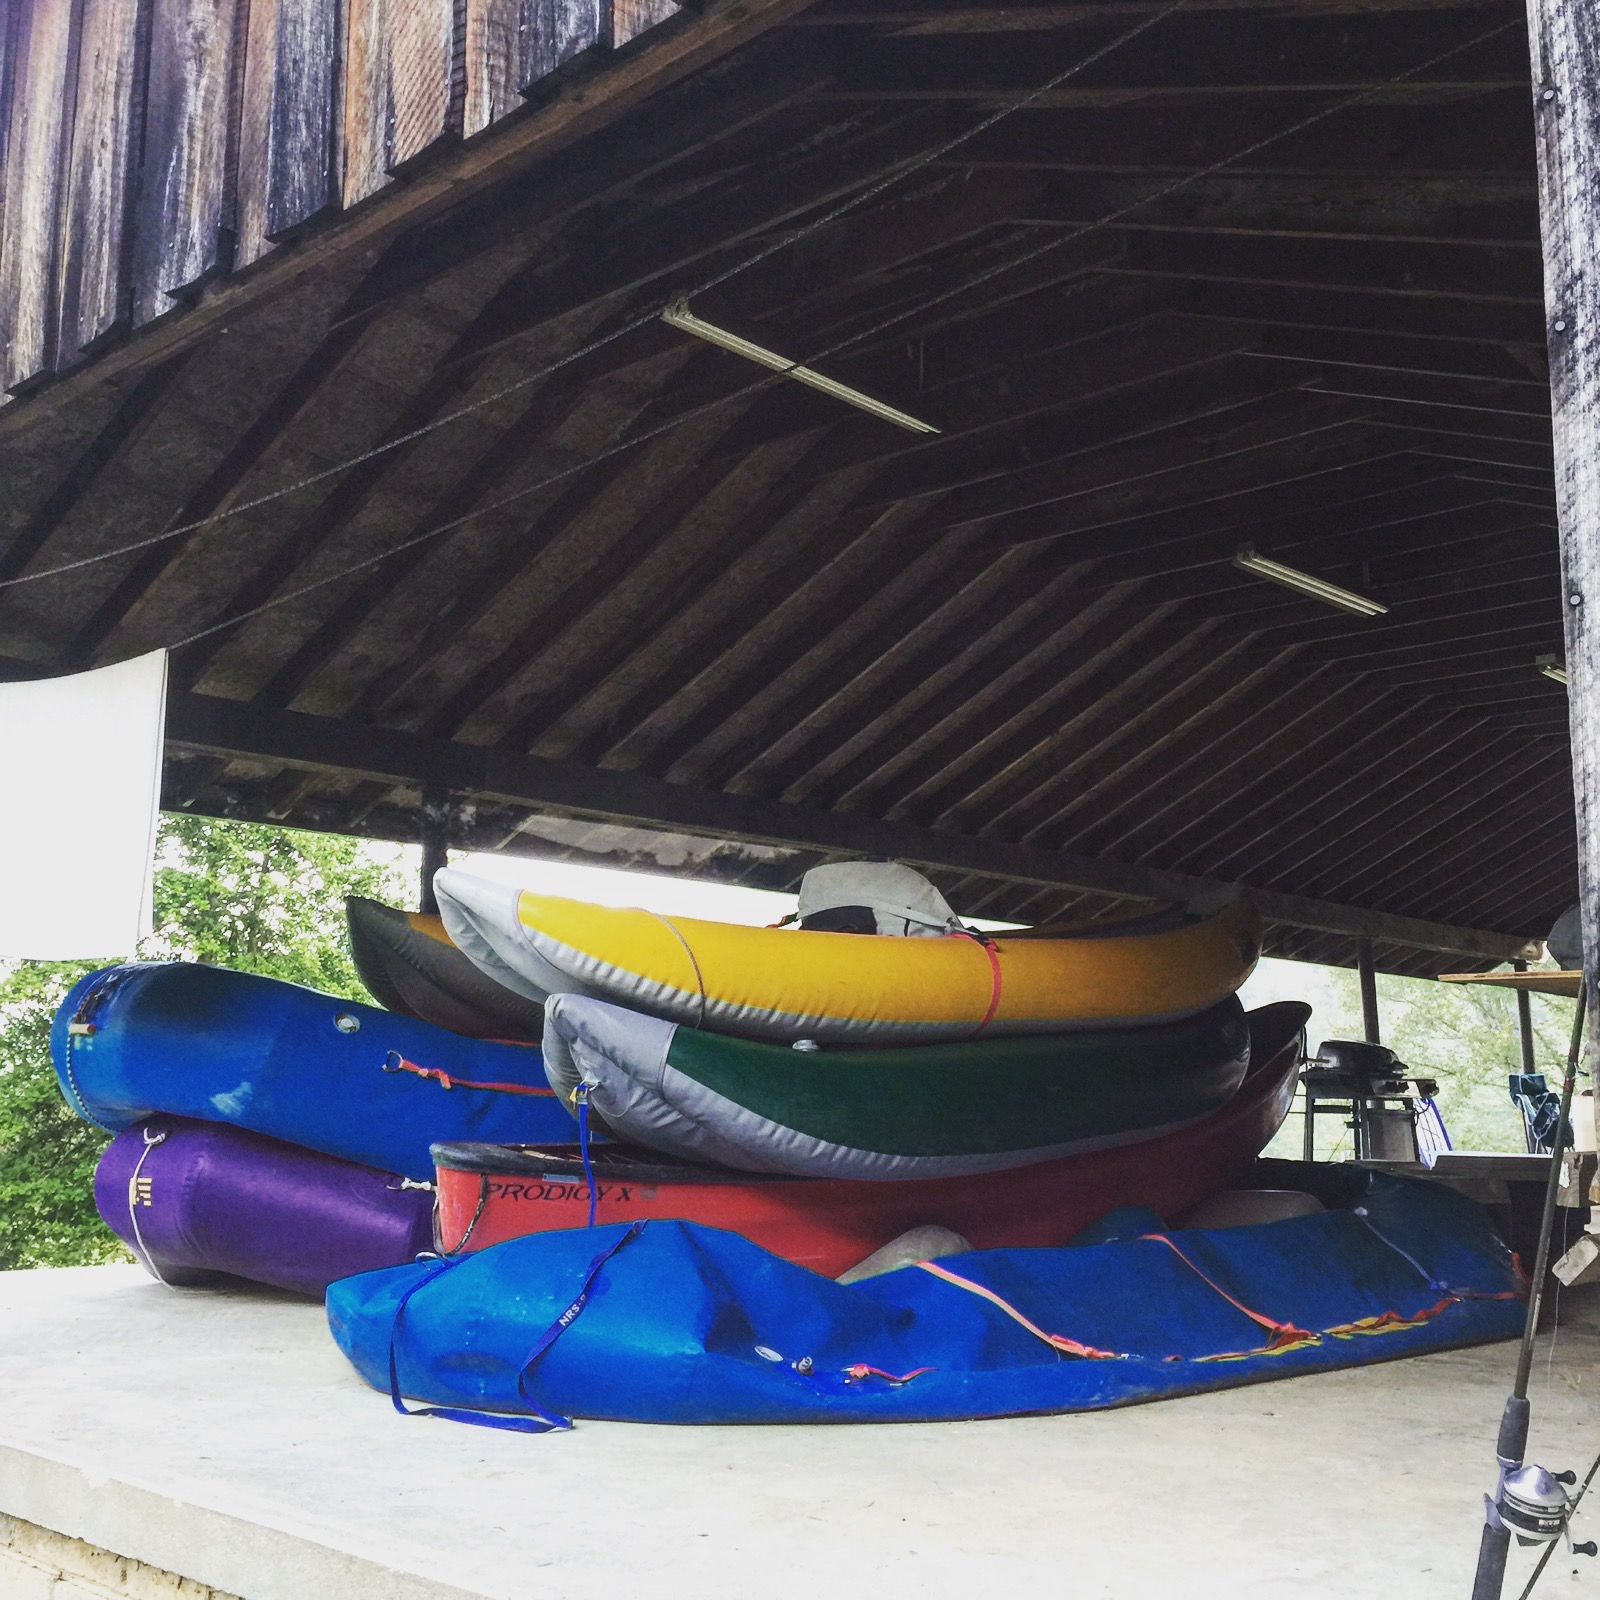 White water rafts, August 2015.